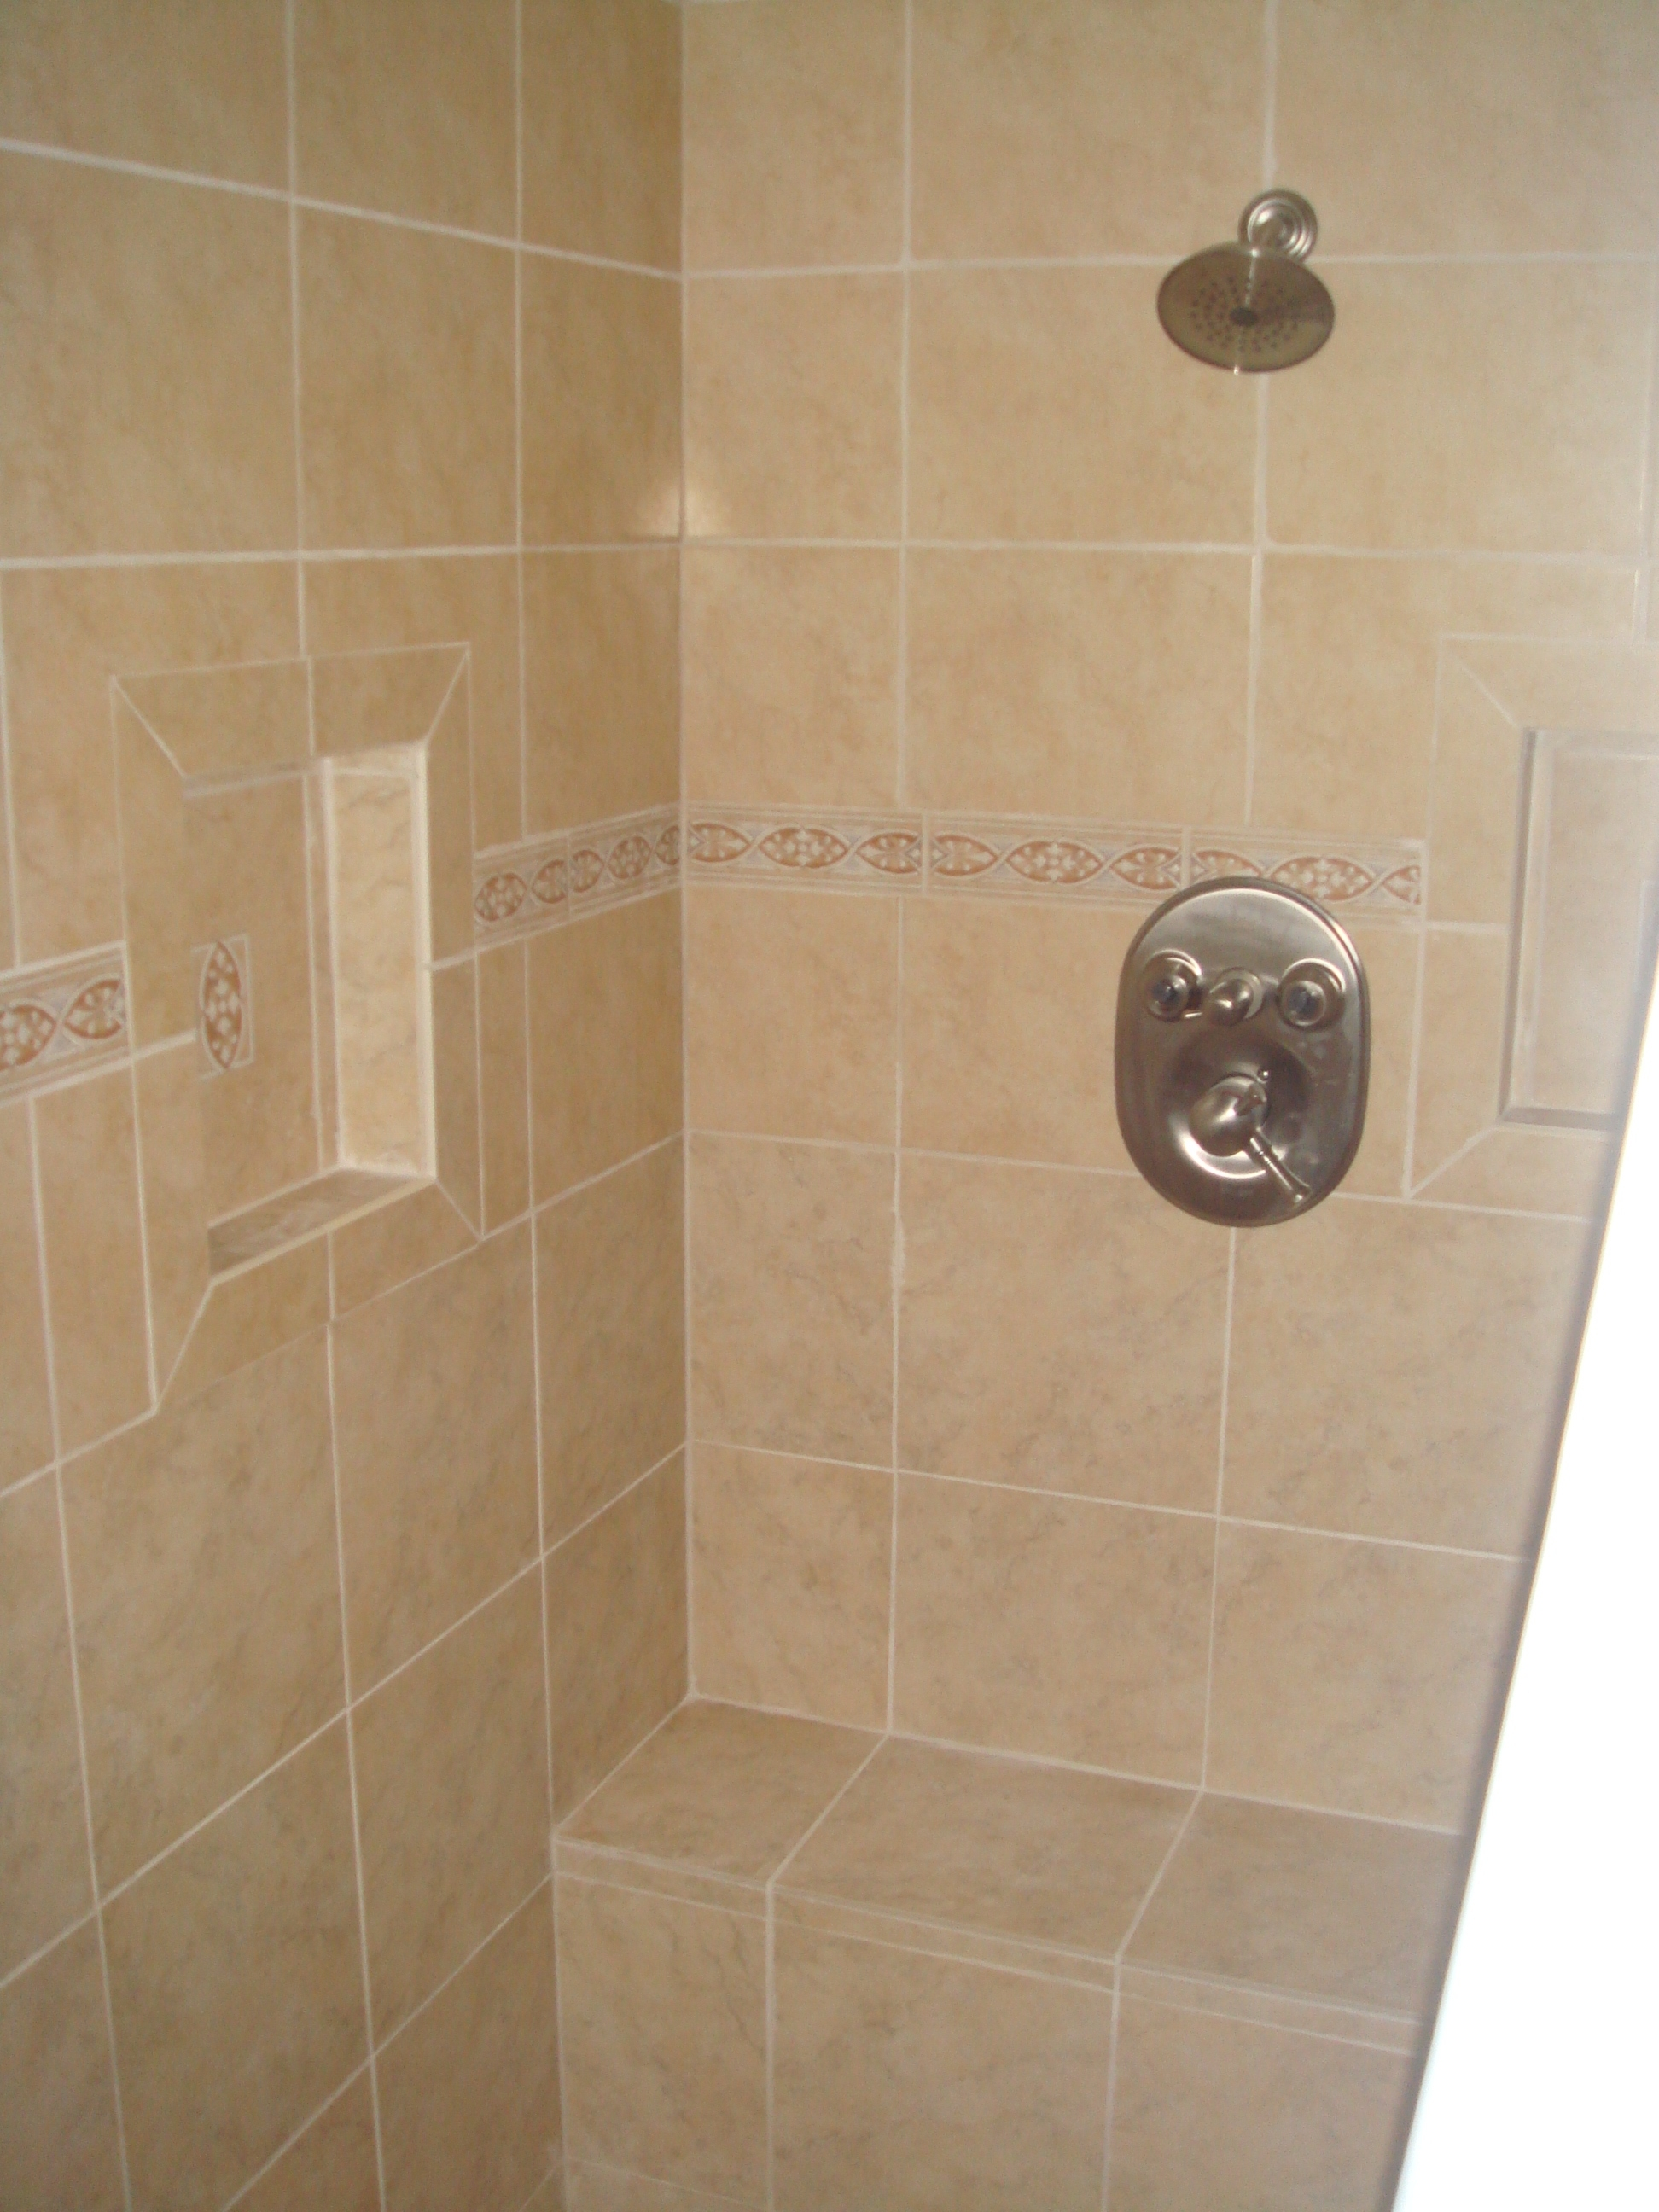 Bathroom Remodeling Greensboro Nc Contact Us Bathroom Remodeling - Bathroom remodeling greensboro nc